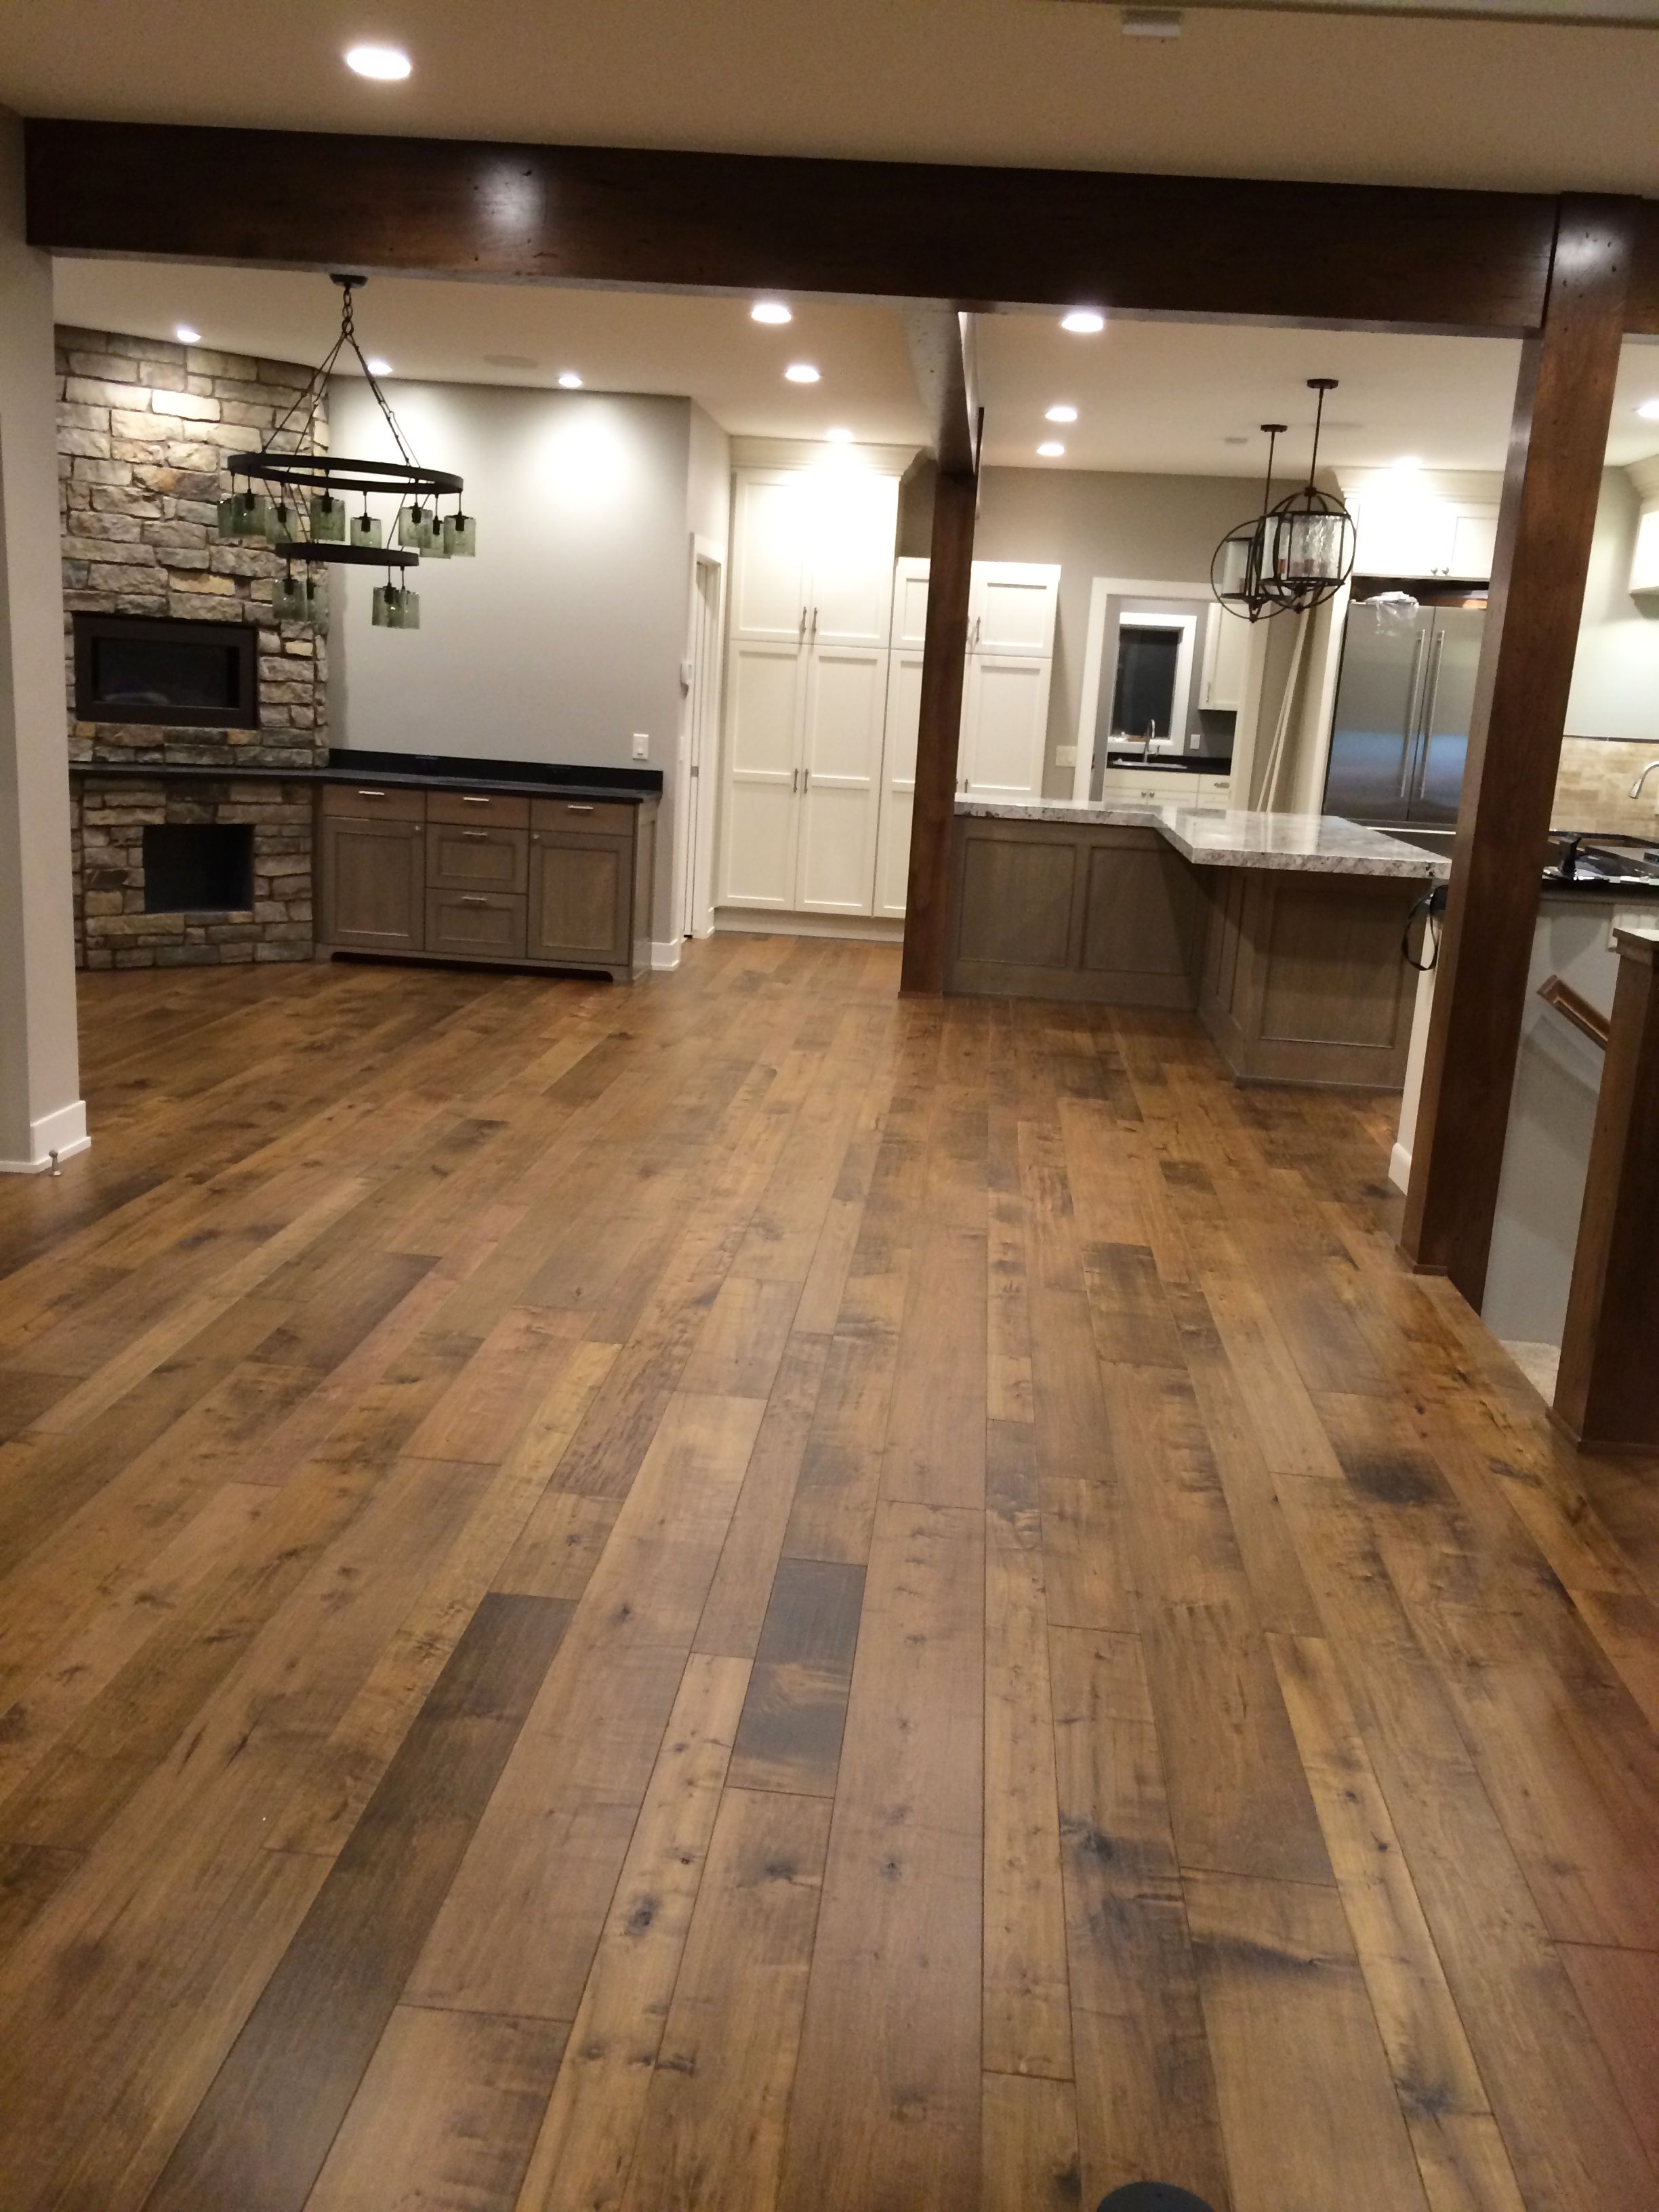 Monterey Hardwood Flooring  Rooms And Spaces  Wood